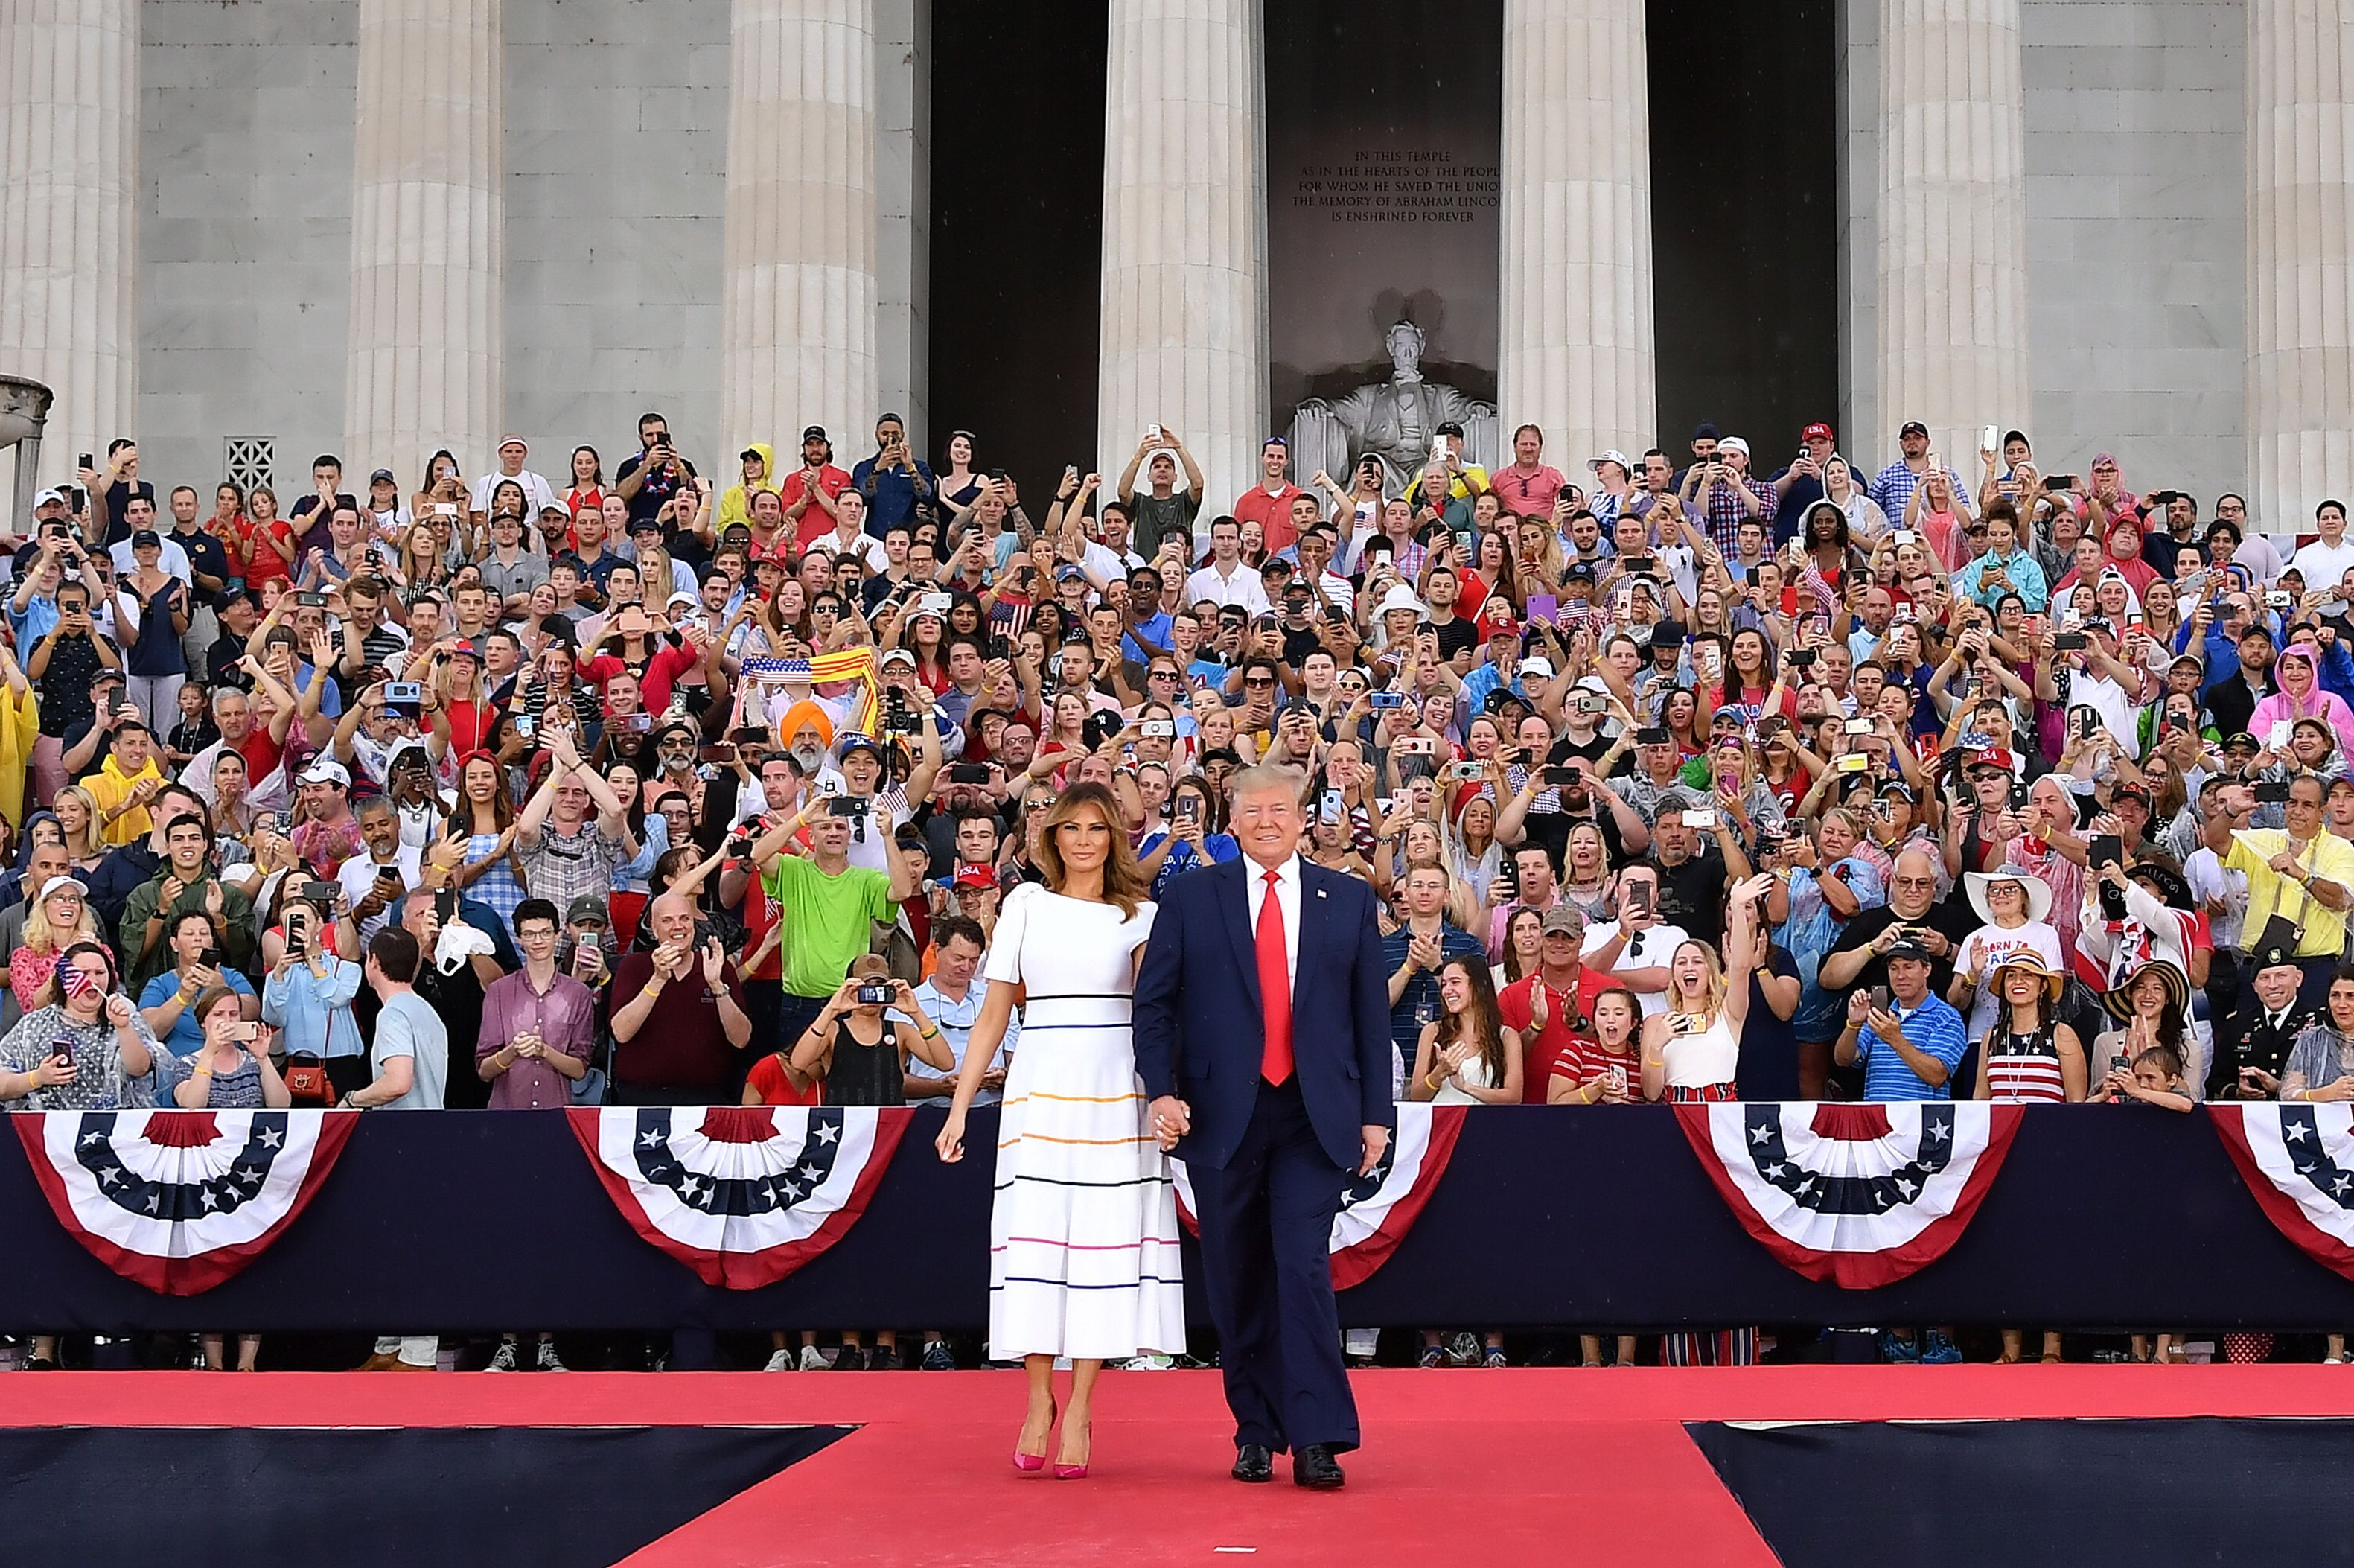 """US President Donald Trump and First Lady Melania Trump arrive to the """"Salute to America"""" Fourth of July event at the Lincoln Memorial in Washington, DC, July 4, 2019. (Photo by MANDEL NGAN / AFP)        (Photo credit should read MANDEL NGAN/AFP/Getty Images)"""